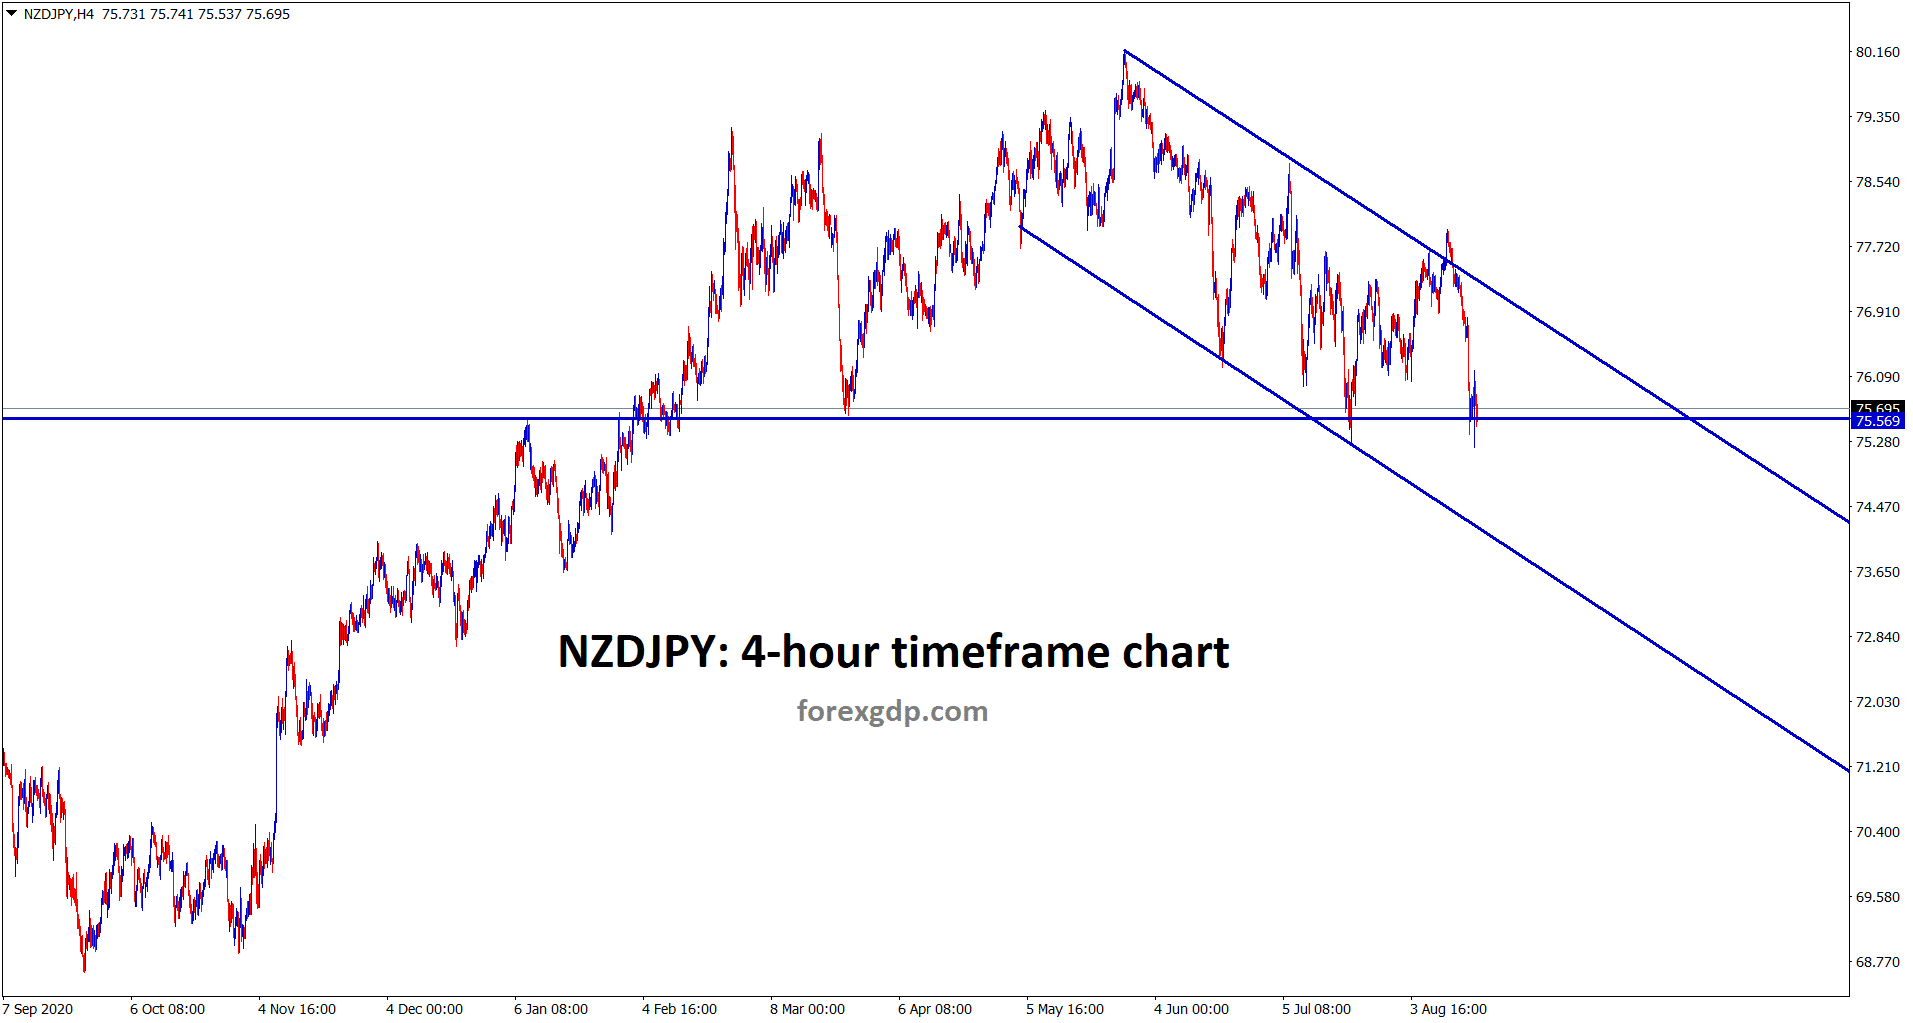 NZDJPY is moving in a descending channel and now it reached the support area wait for the breakout or reversal